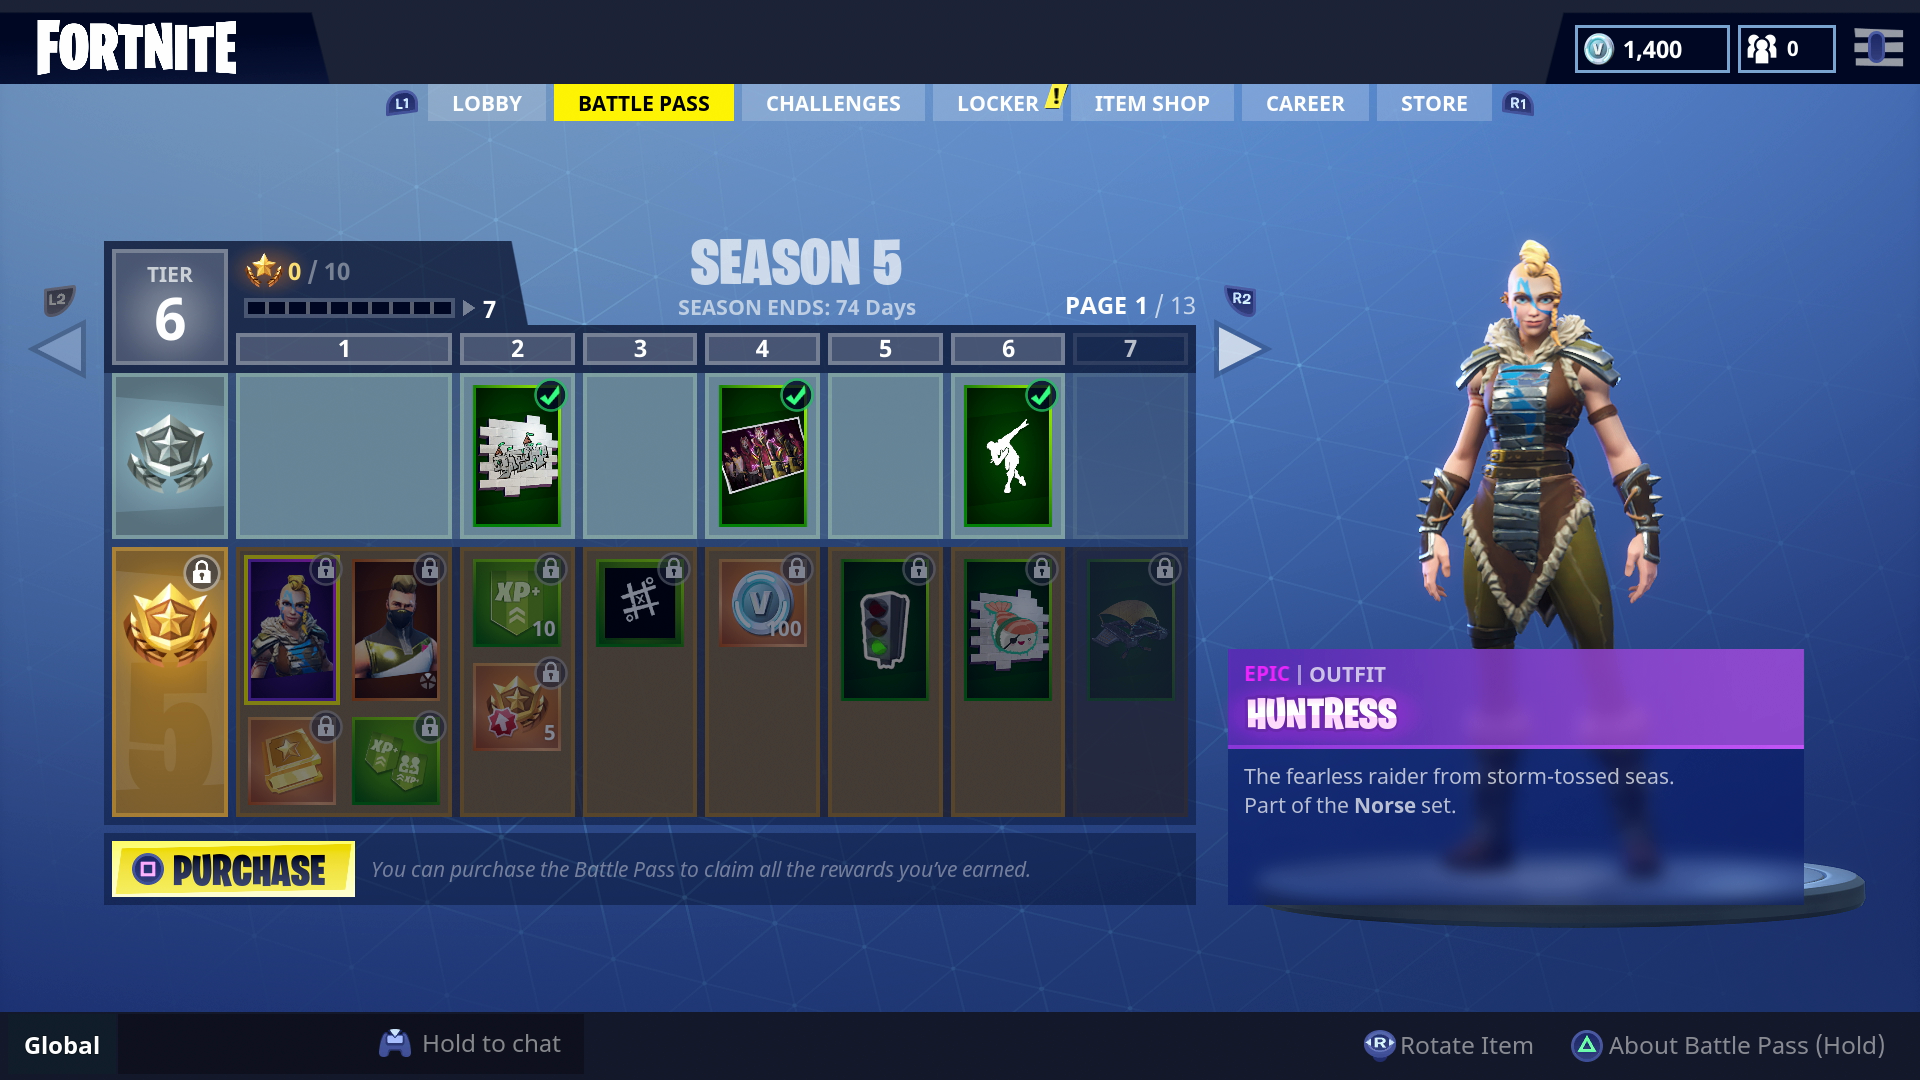 you might remember that fortnite season 4 s battle pass did something similar rewarding you with 2 new skins straight away - fortnite season 2 battle pass skins names